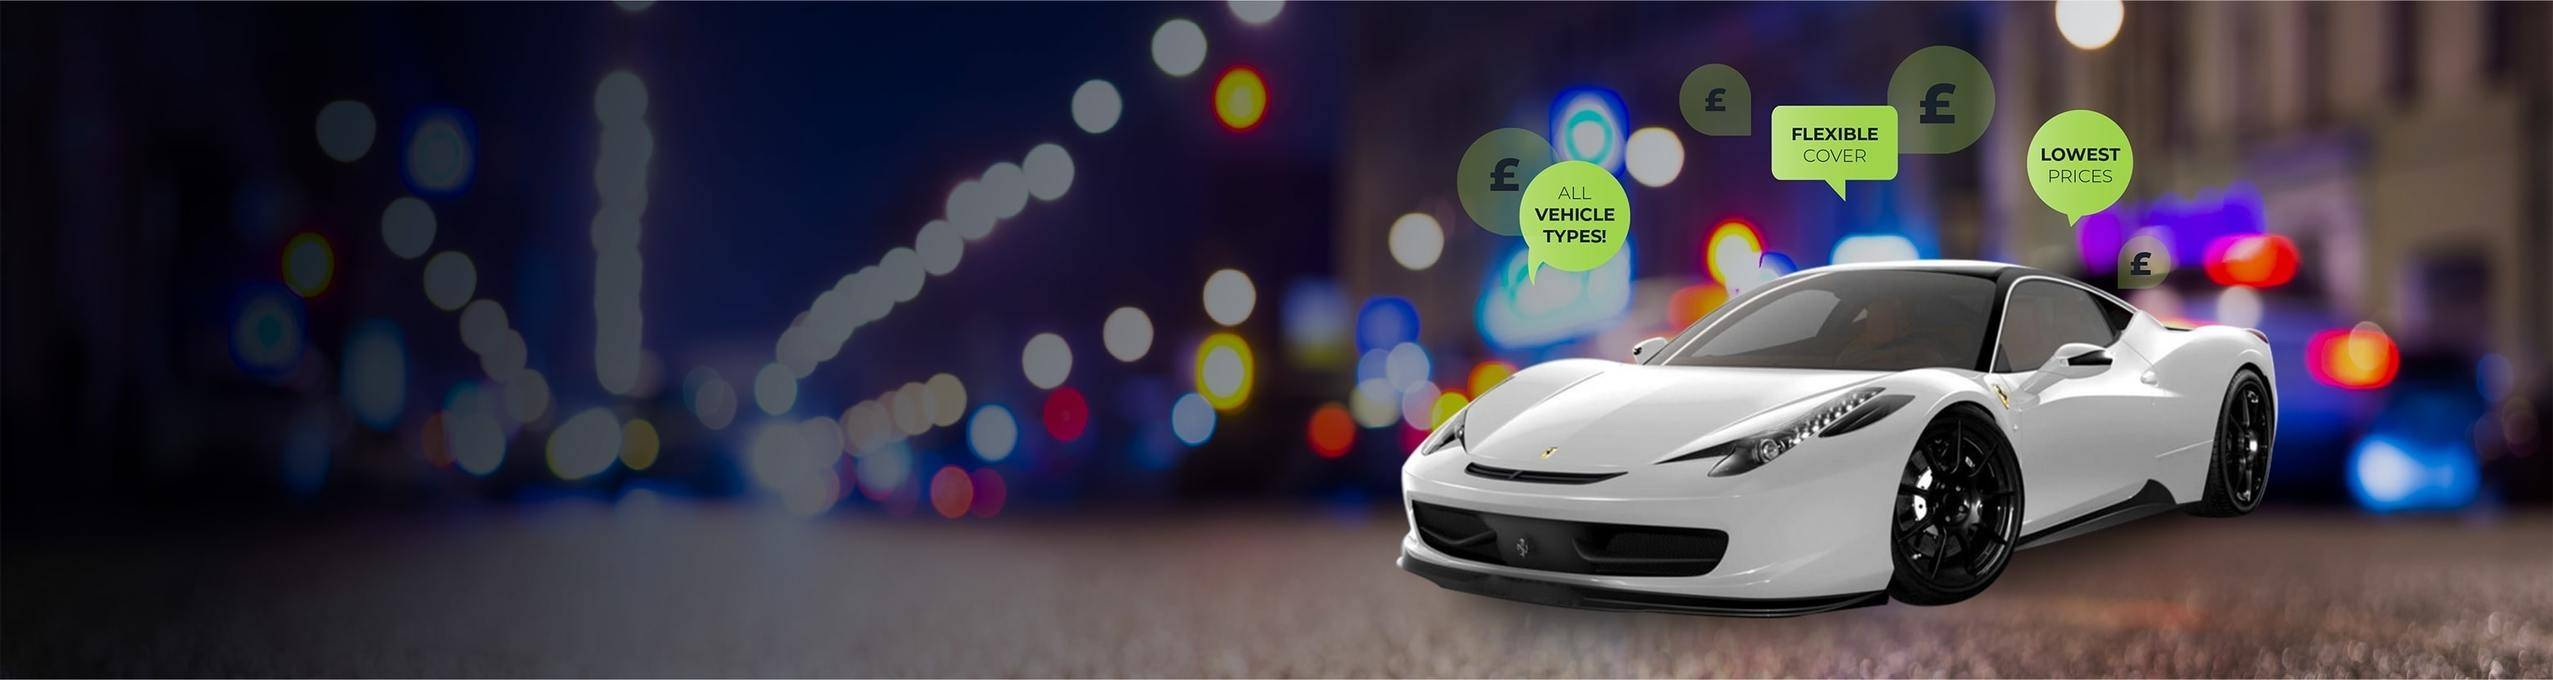 Sports Car with comprehensive car insurance policy